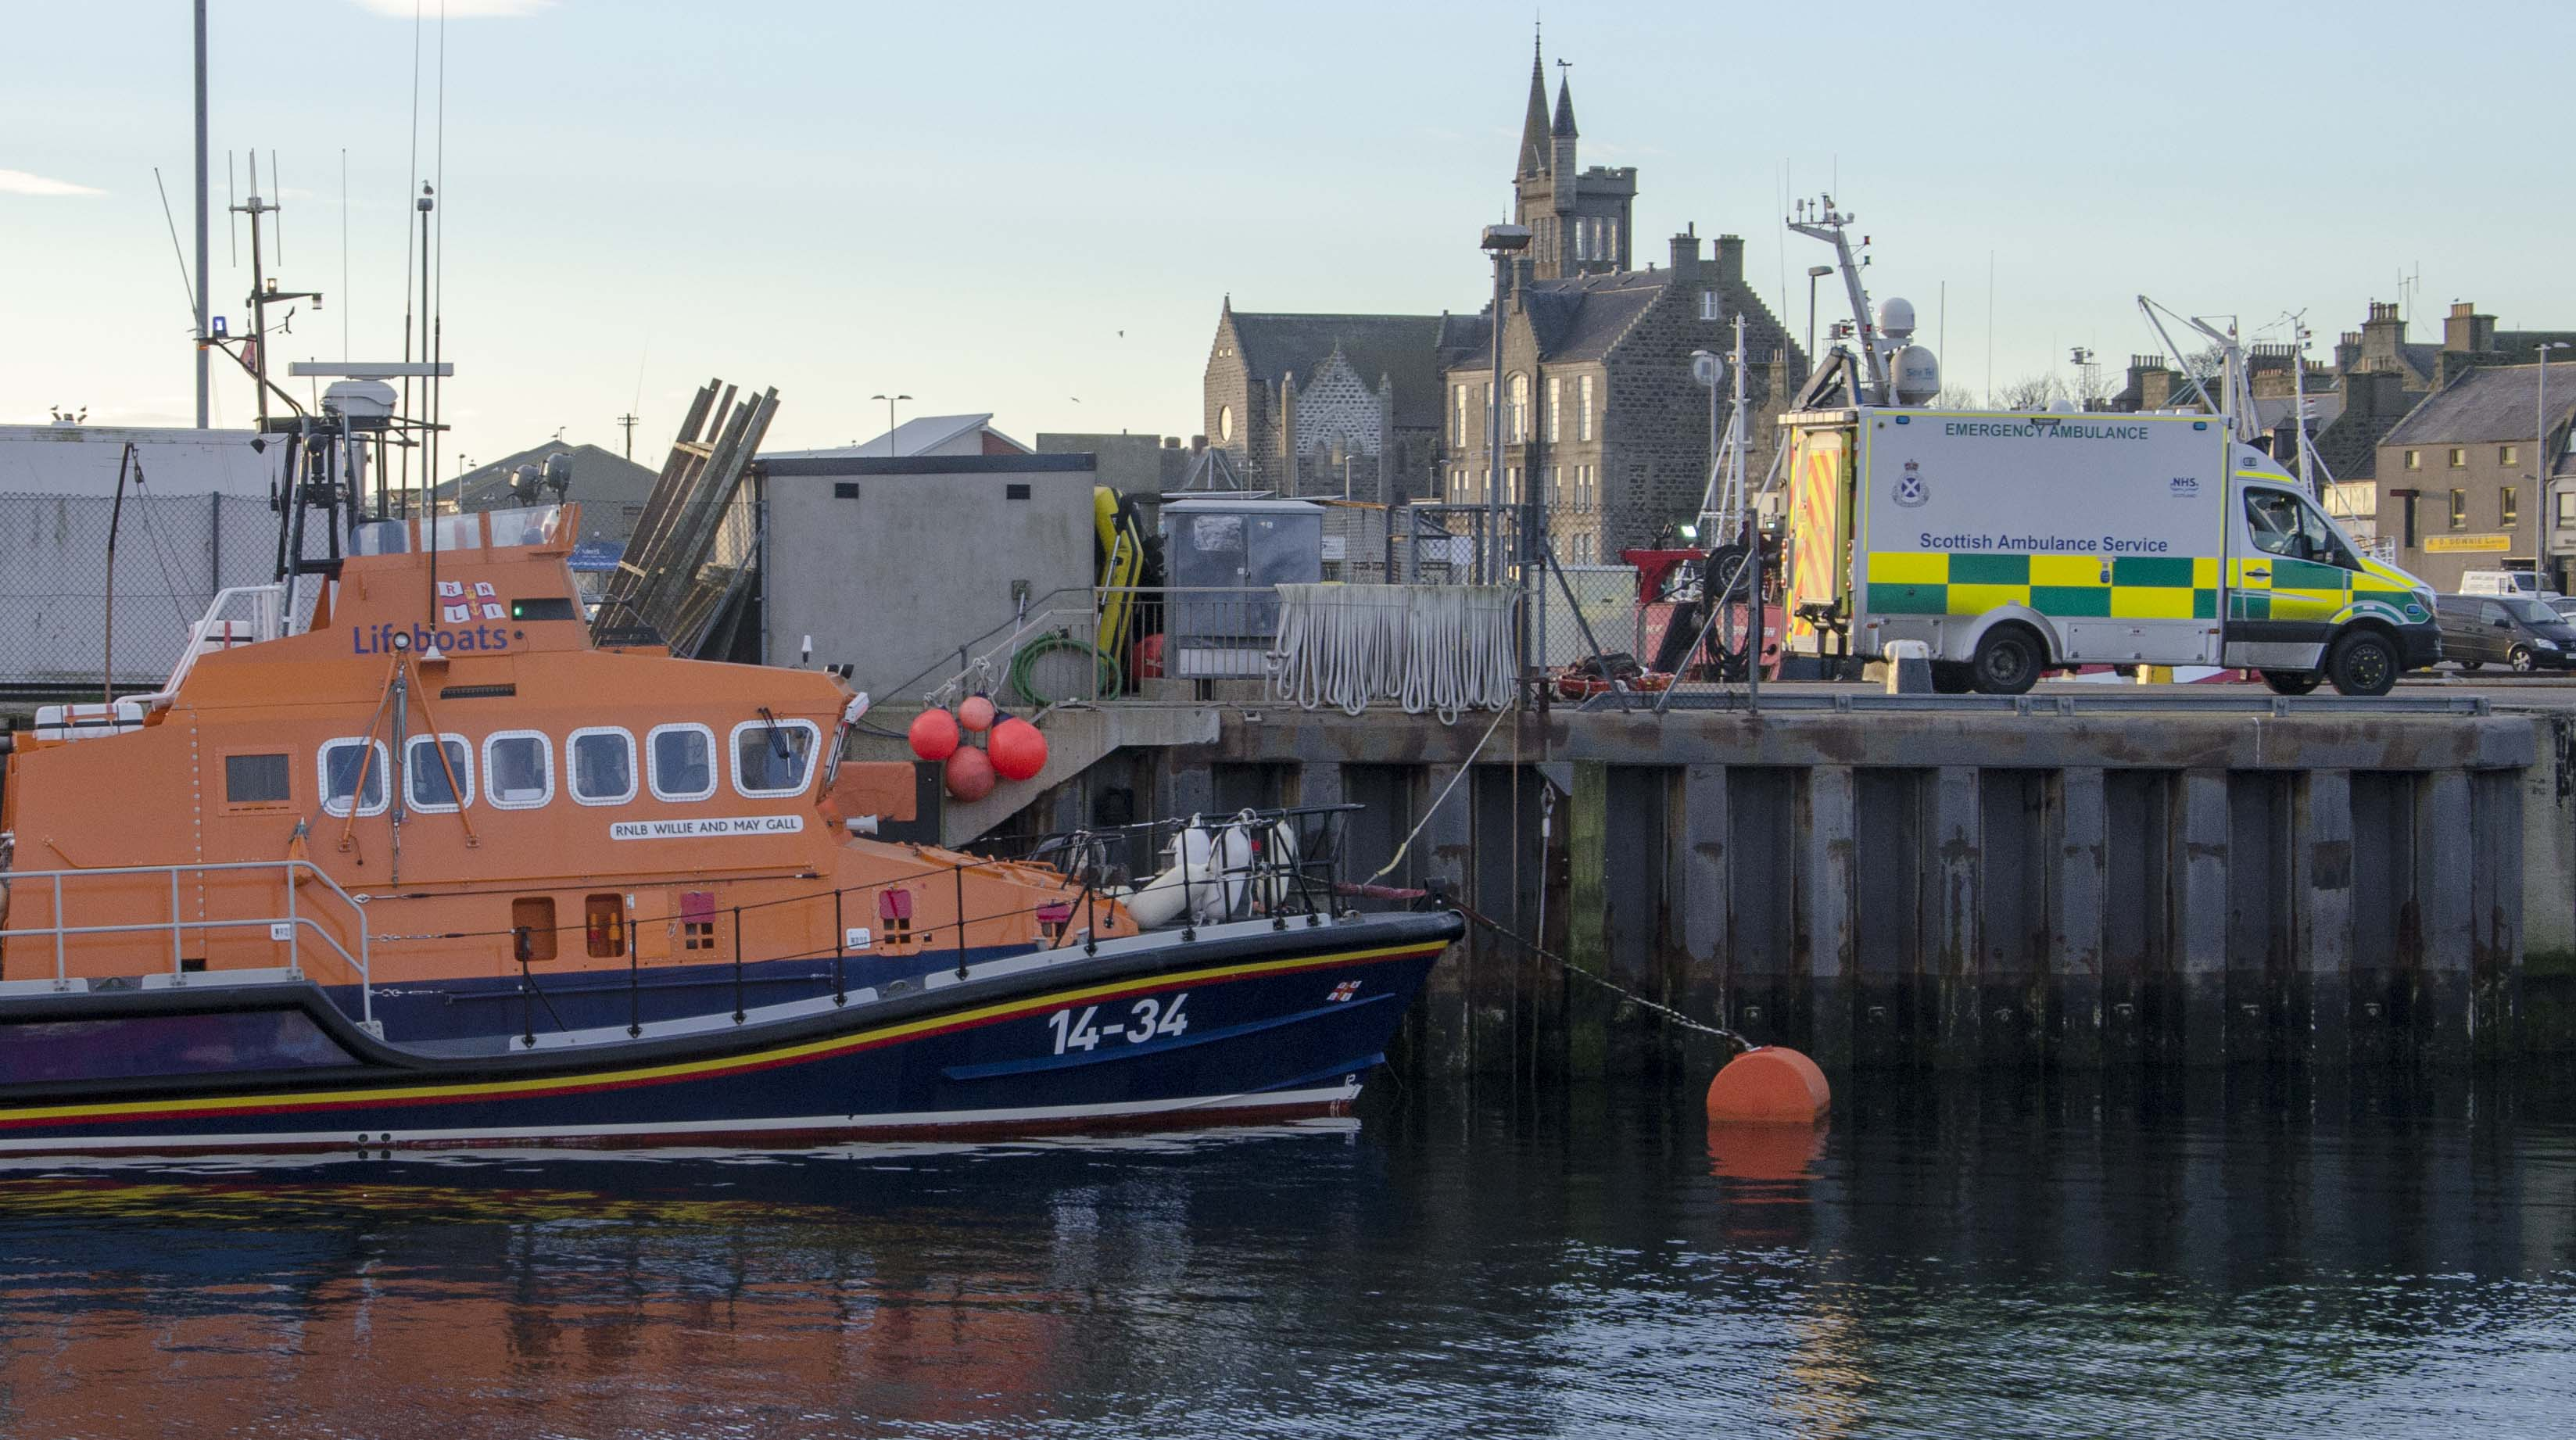 The casualty was immediately transferred to a waiting ambulance at the lifeboat berth.